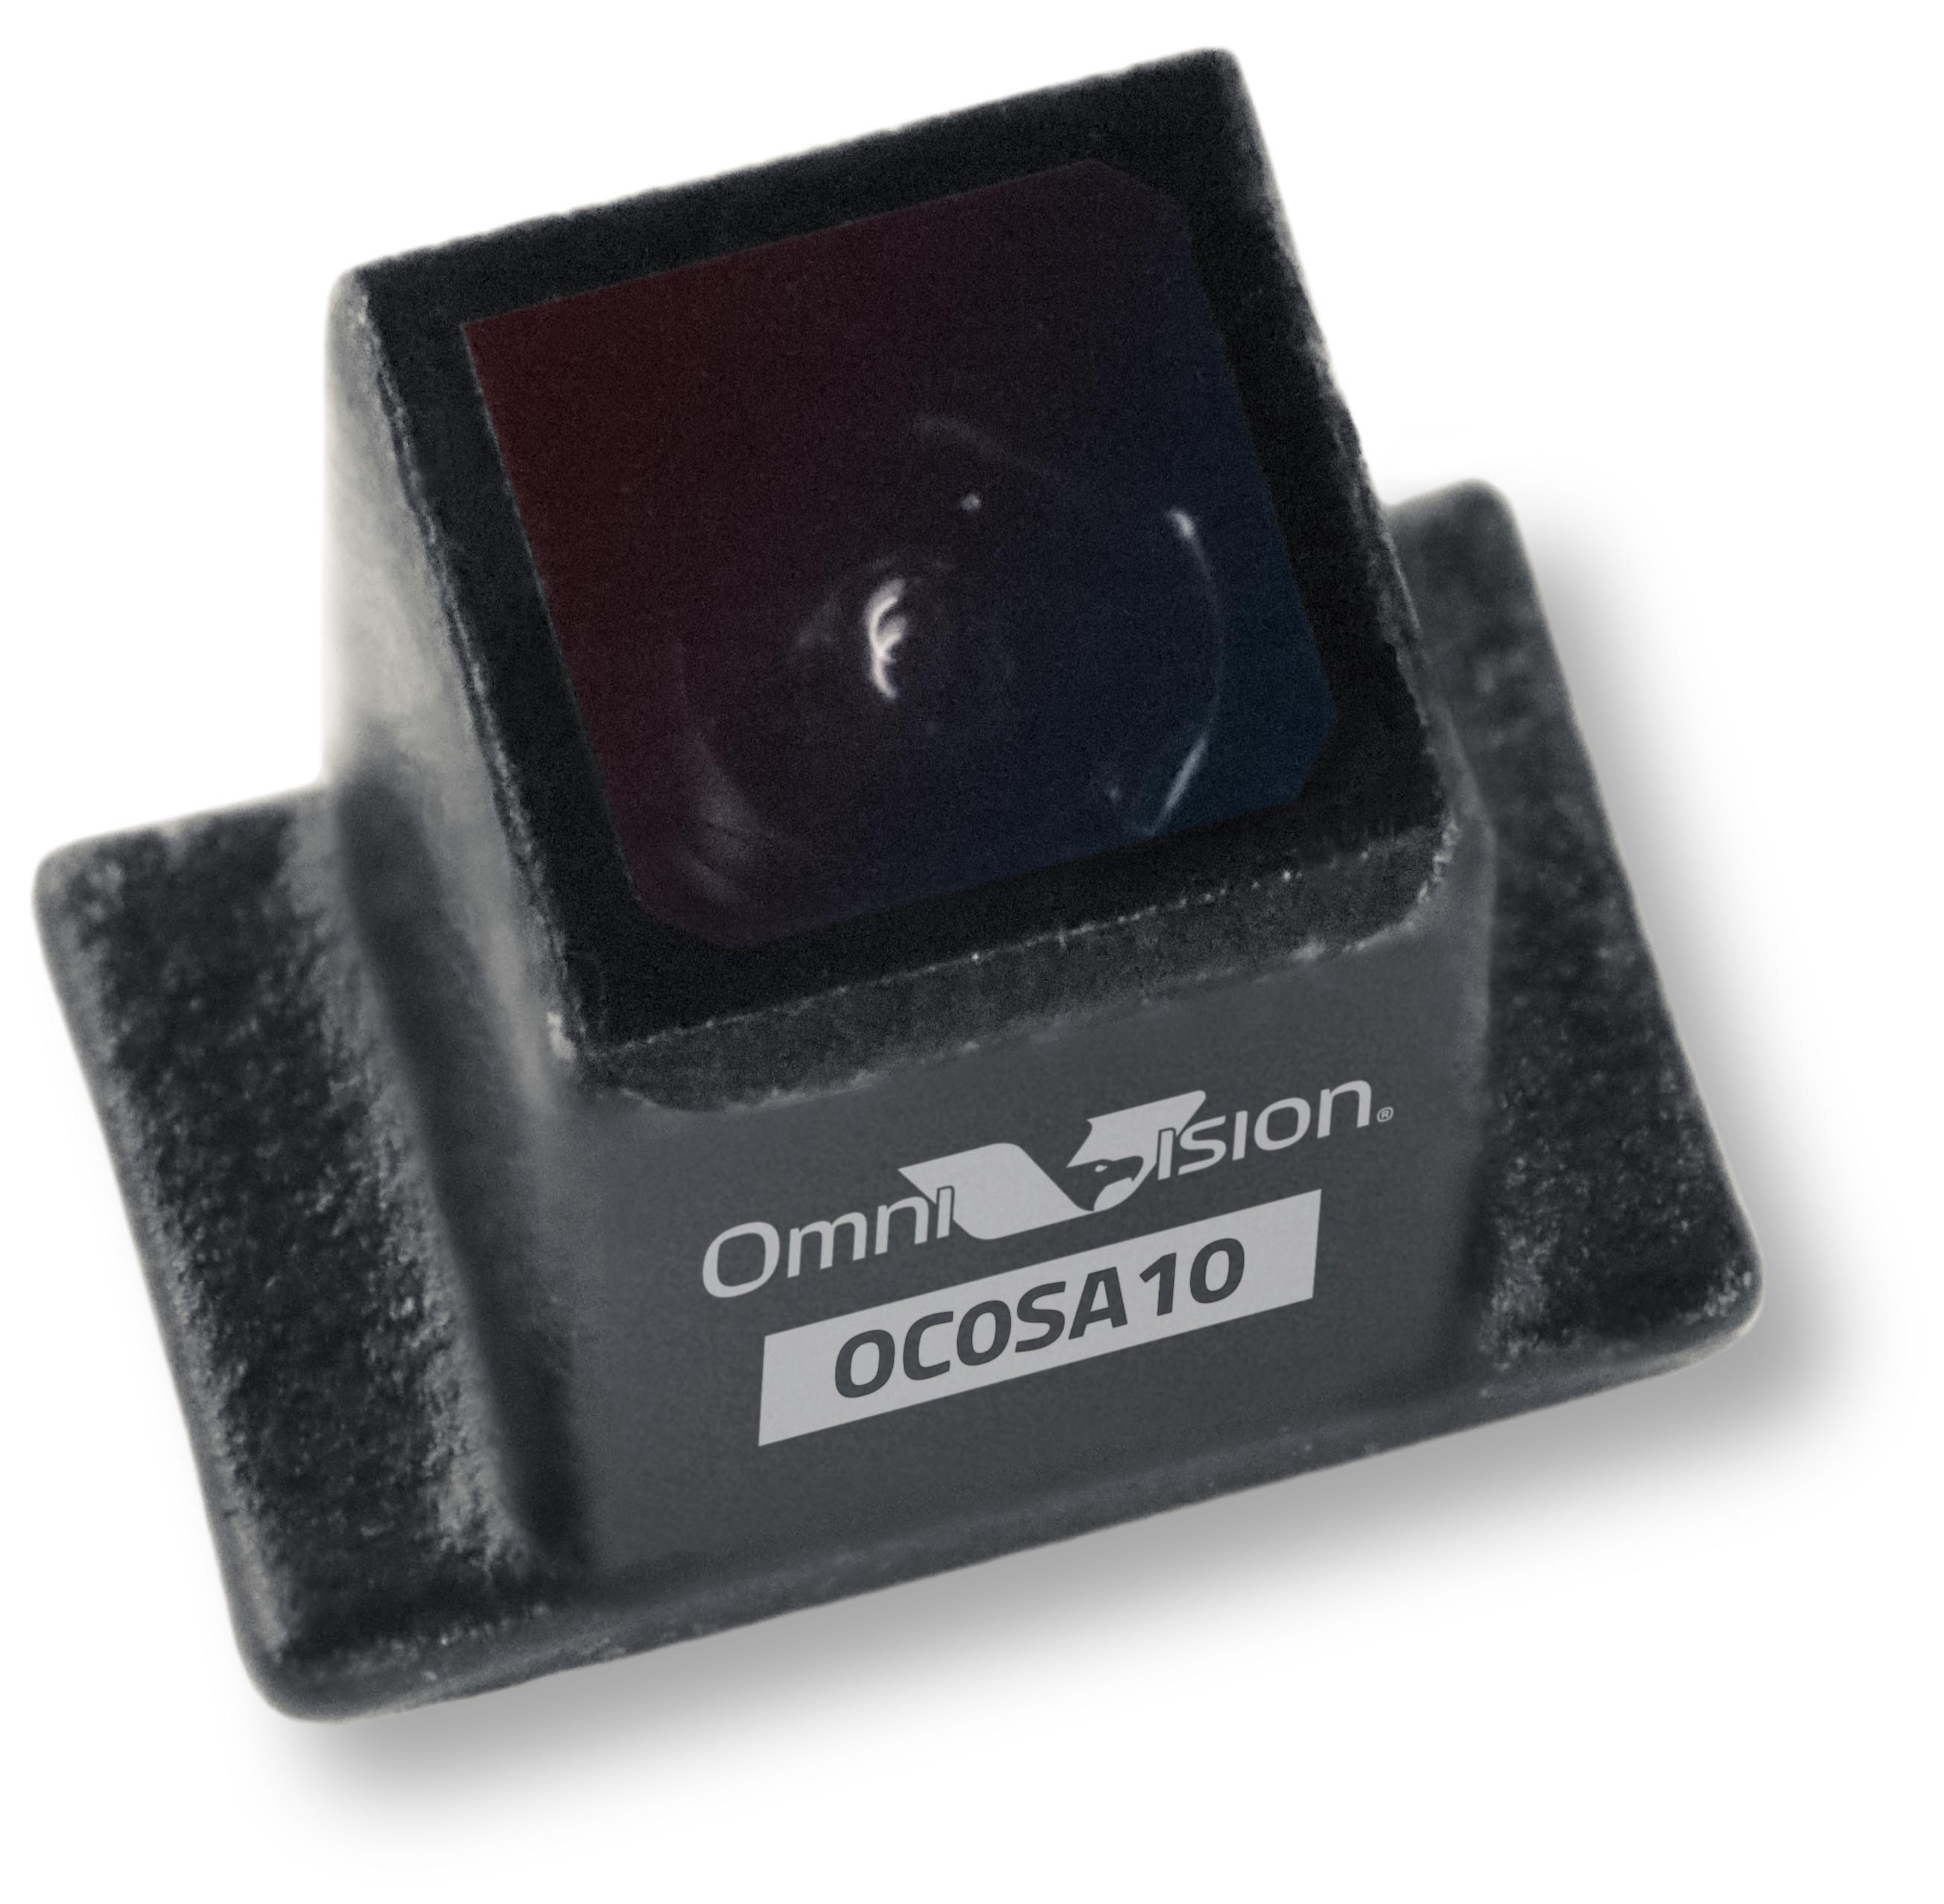 OmniVision's new OC0SA10 CameraCubeChip offering 640k resolution at 60 fps, integrated IR cut filter, and 120-degree and 90-degree field of view in a 2.6 x 1.6 mm wafer-level camera module package